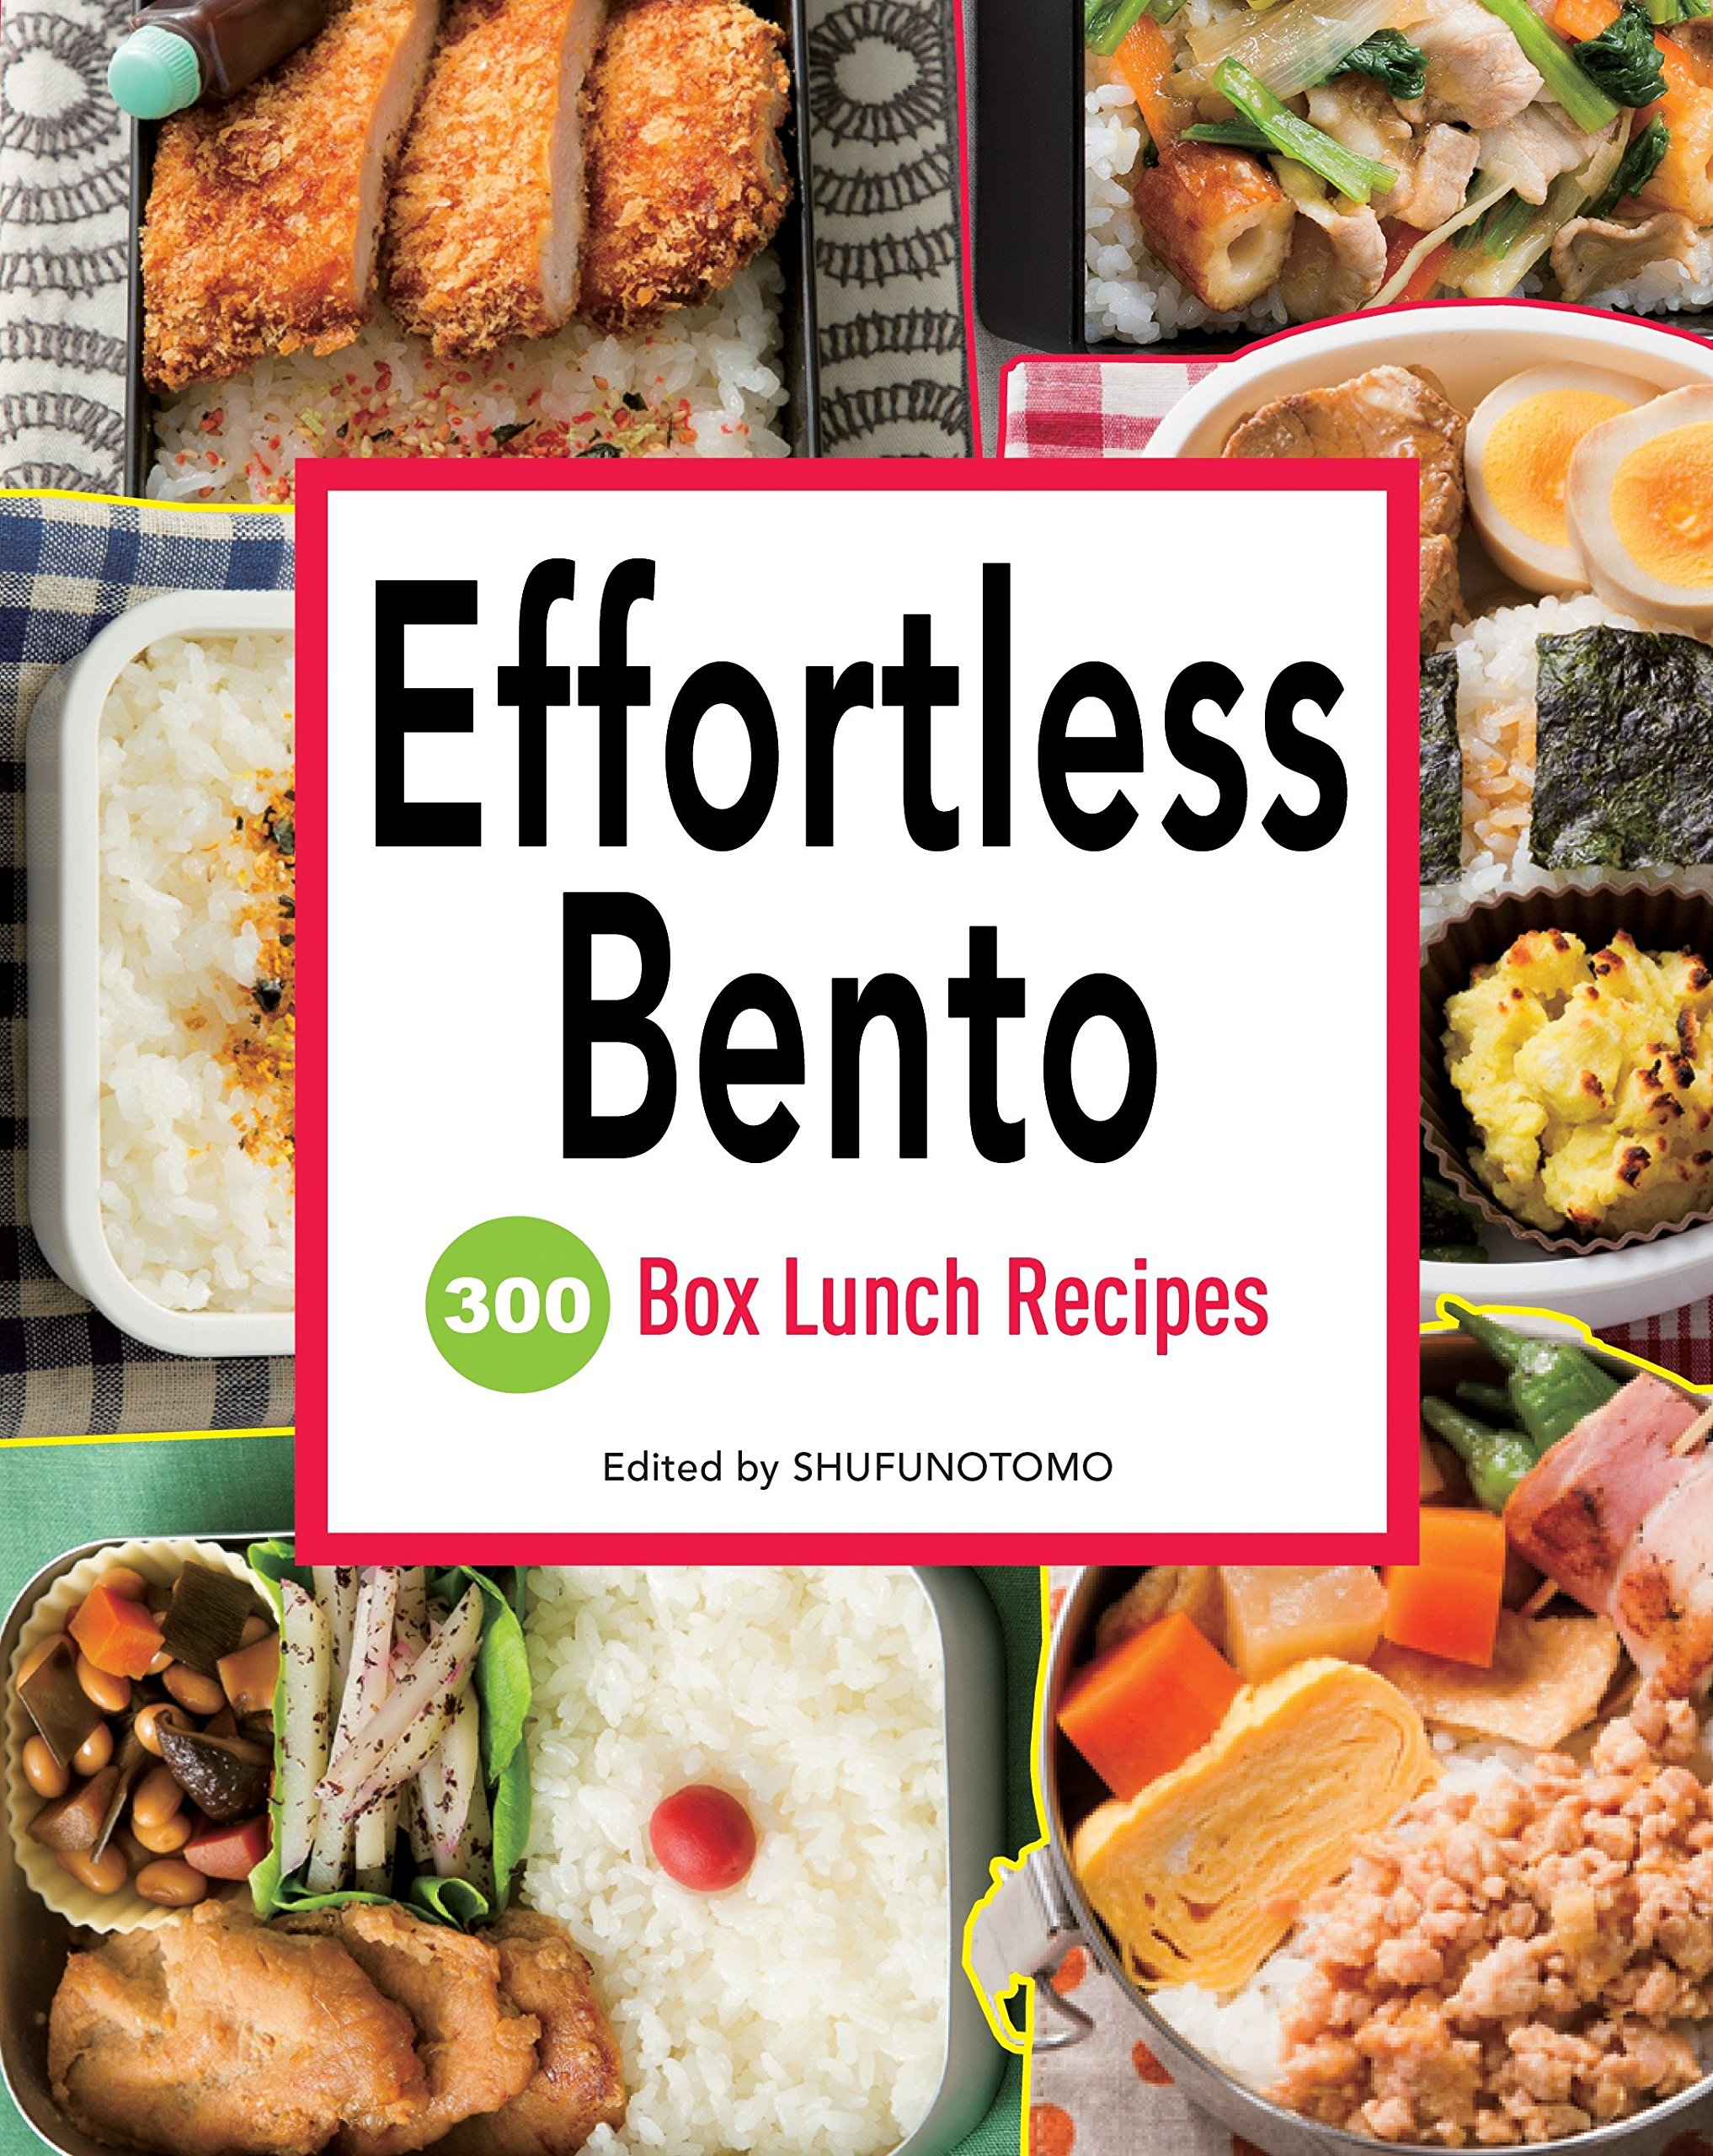 426099b37583 Effortless Bento: 300 Japanese Box Lunch Recipes: Shufu-no-Tomo ...